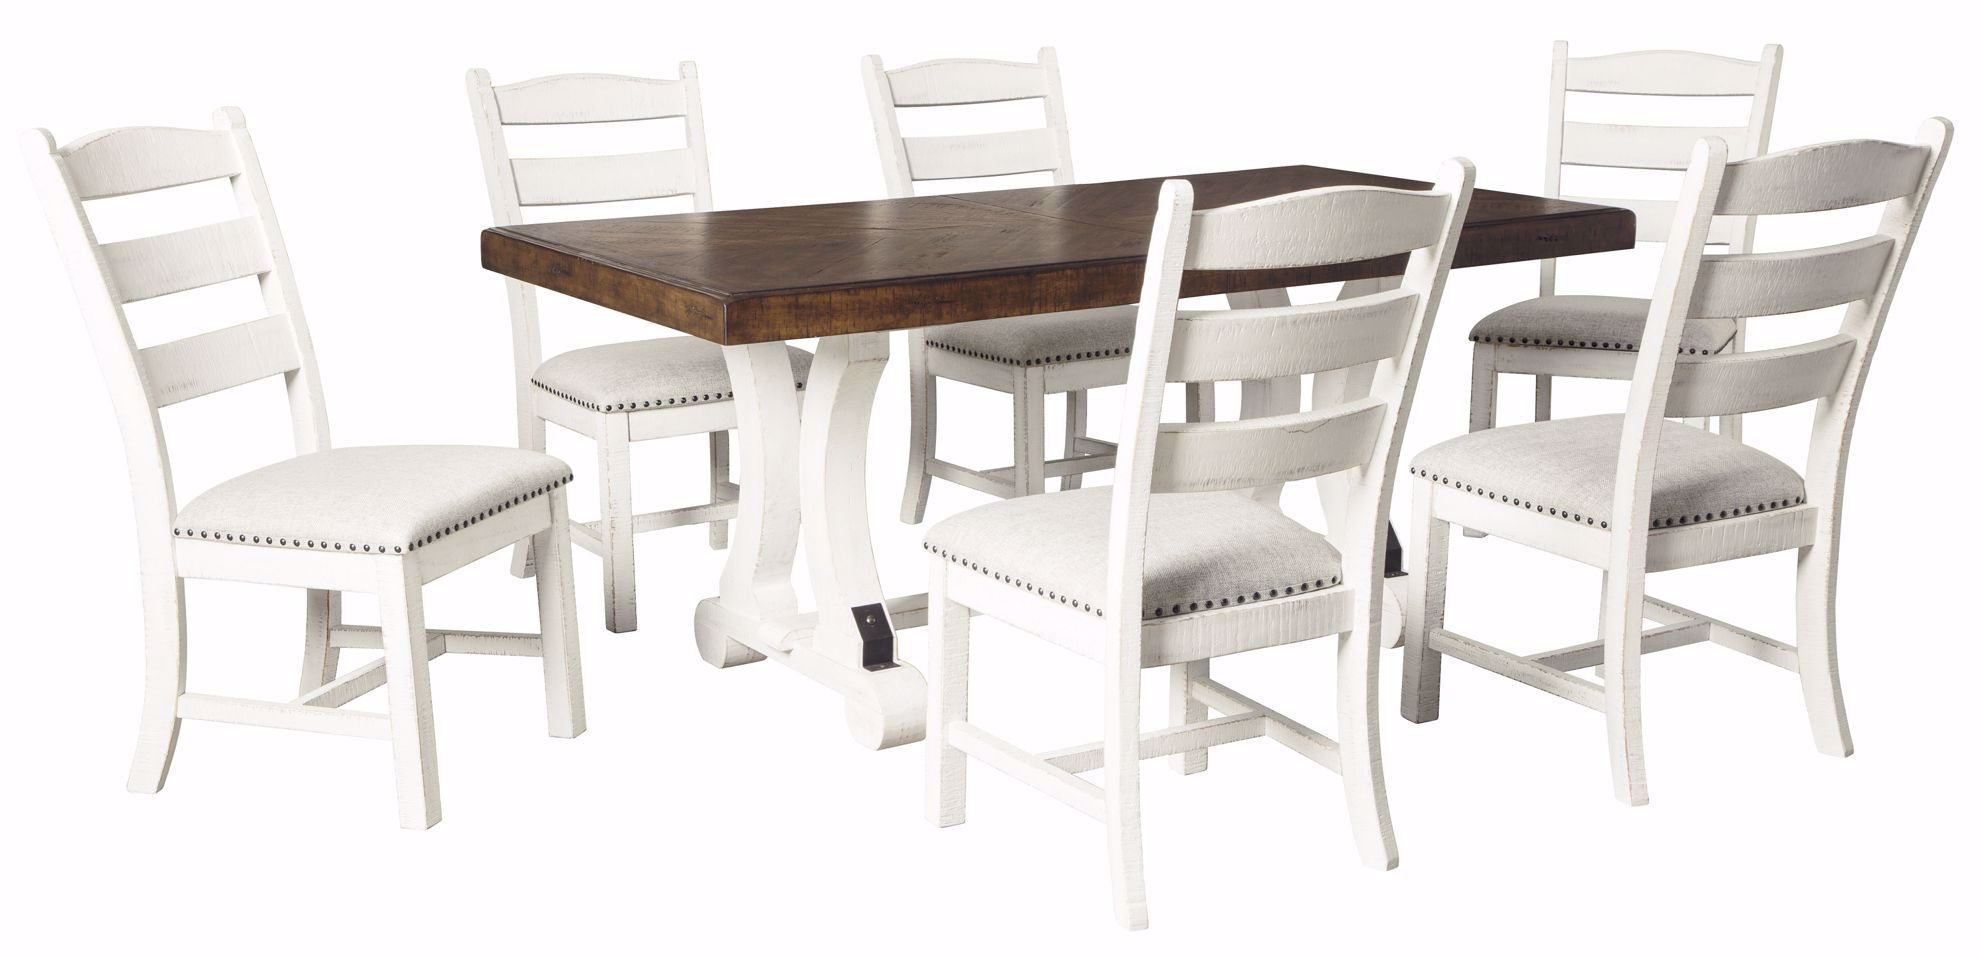 Picture of Valebeck Dining Table & 6 Chairs